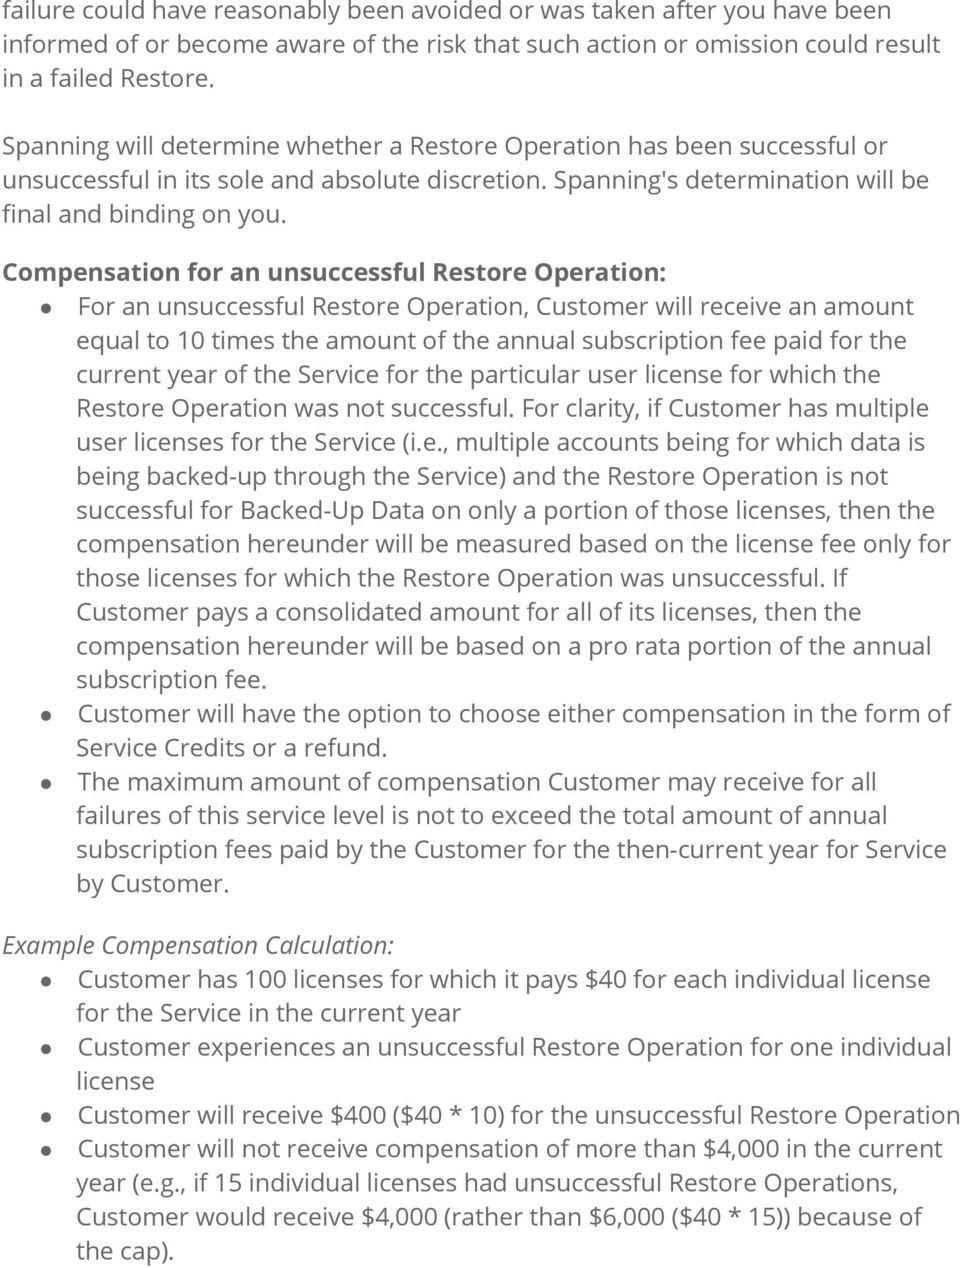 Compensation for an unsuccessful Restore Operation: For an unsuccessful Restore Operation, Customer will receive an amount equal to 10 times the amount of the annual subscription fee paid for the